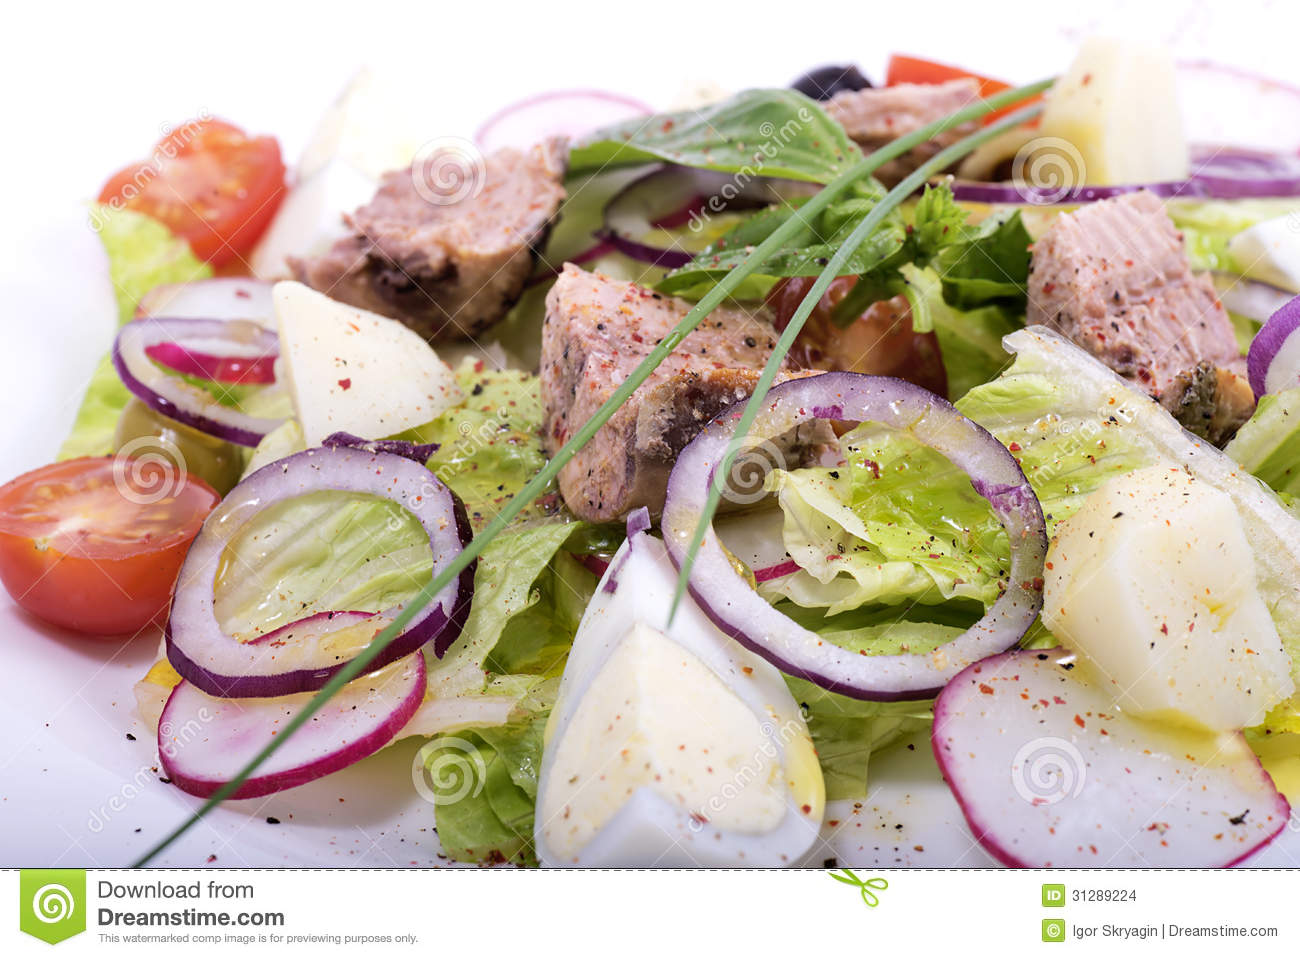 Salad from fresh vegetables with fish on a white dish close up.